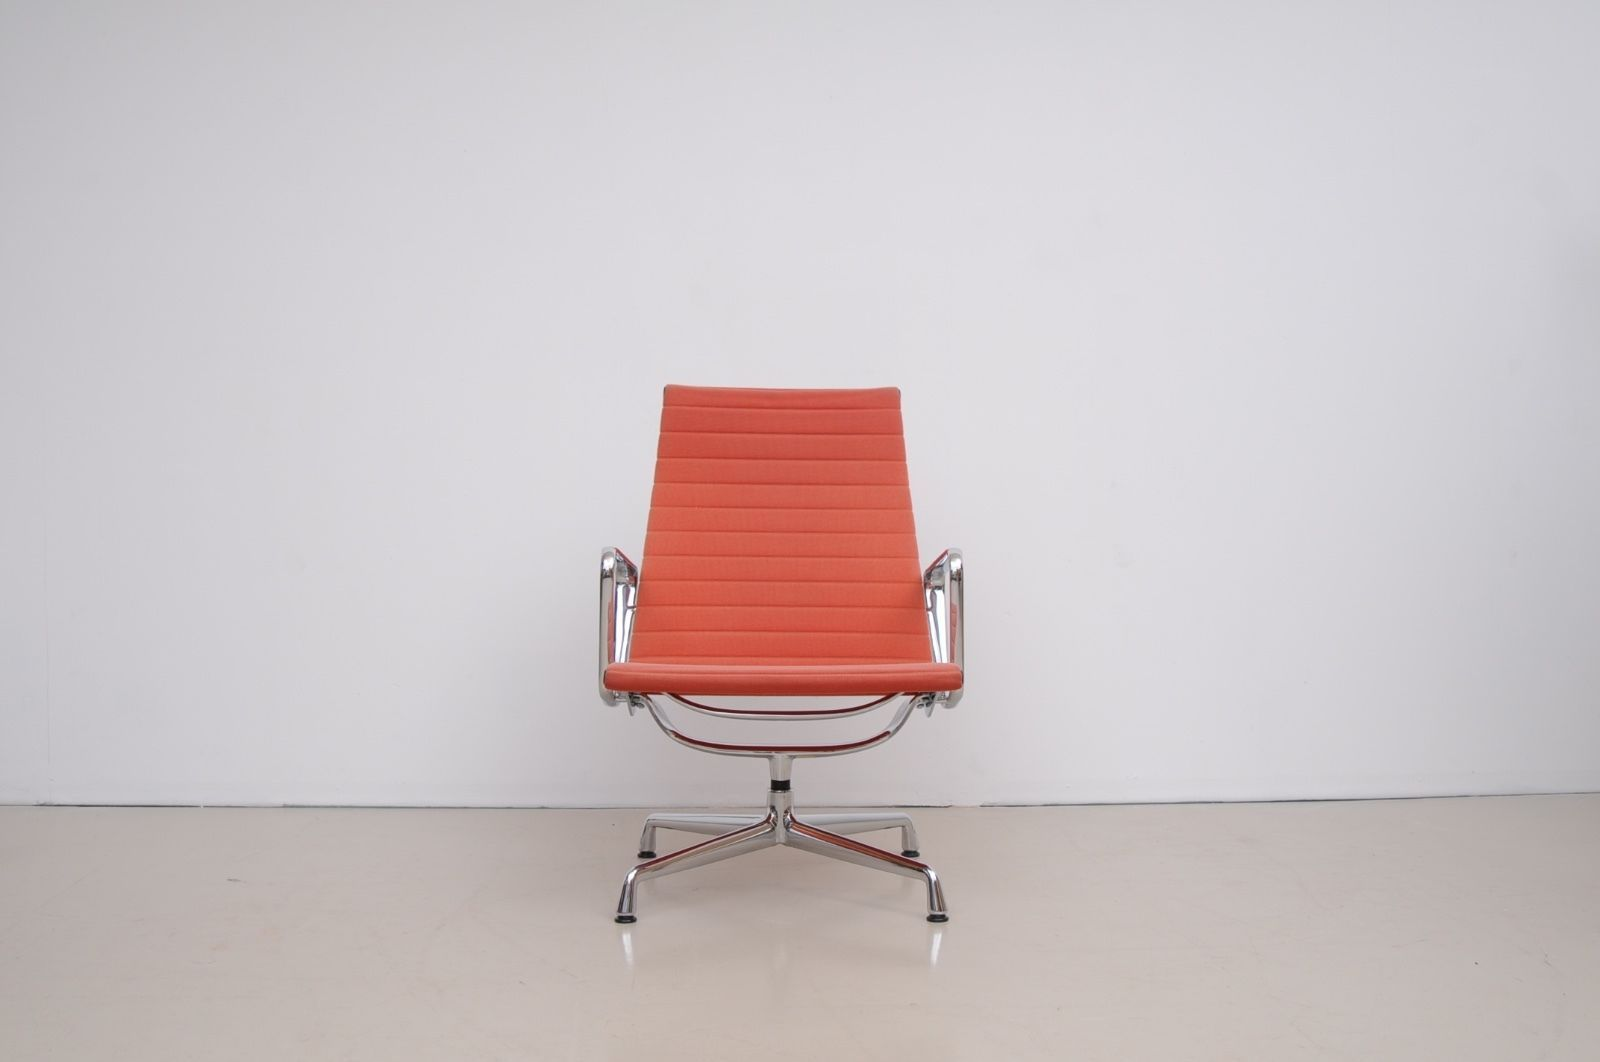 Ea 124 lounge chair by charles ray eames for vitra for for Eames chair nachbau deutschland